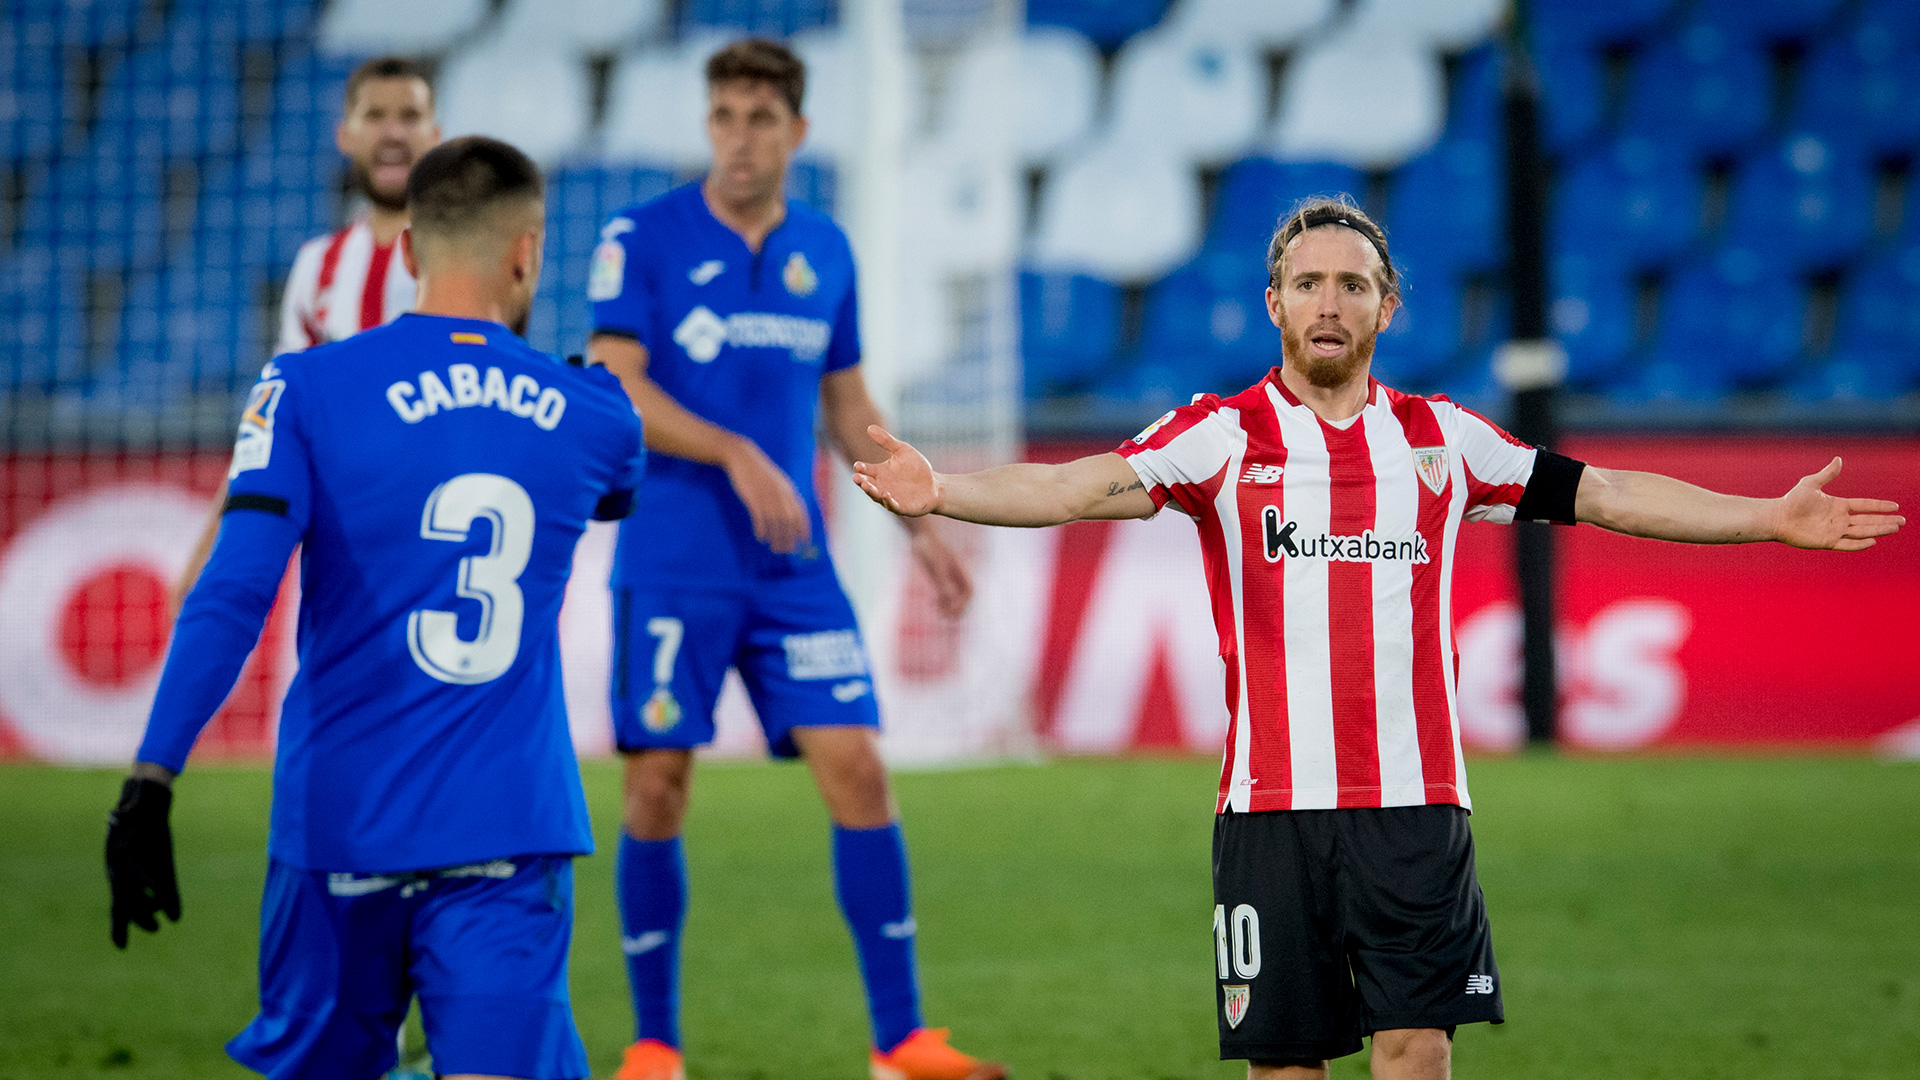 A hard-fought point in Getafe